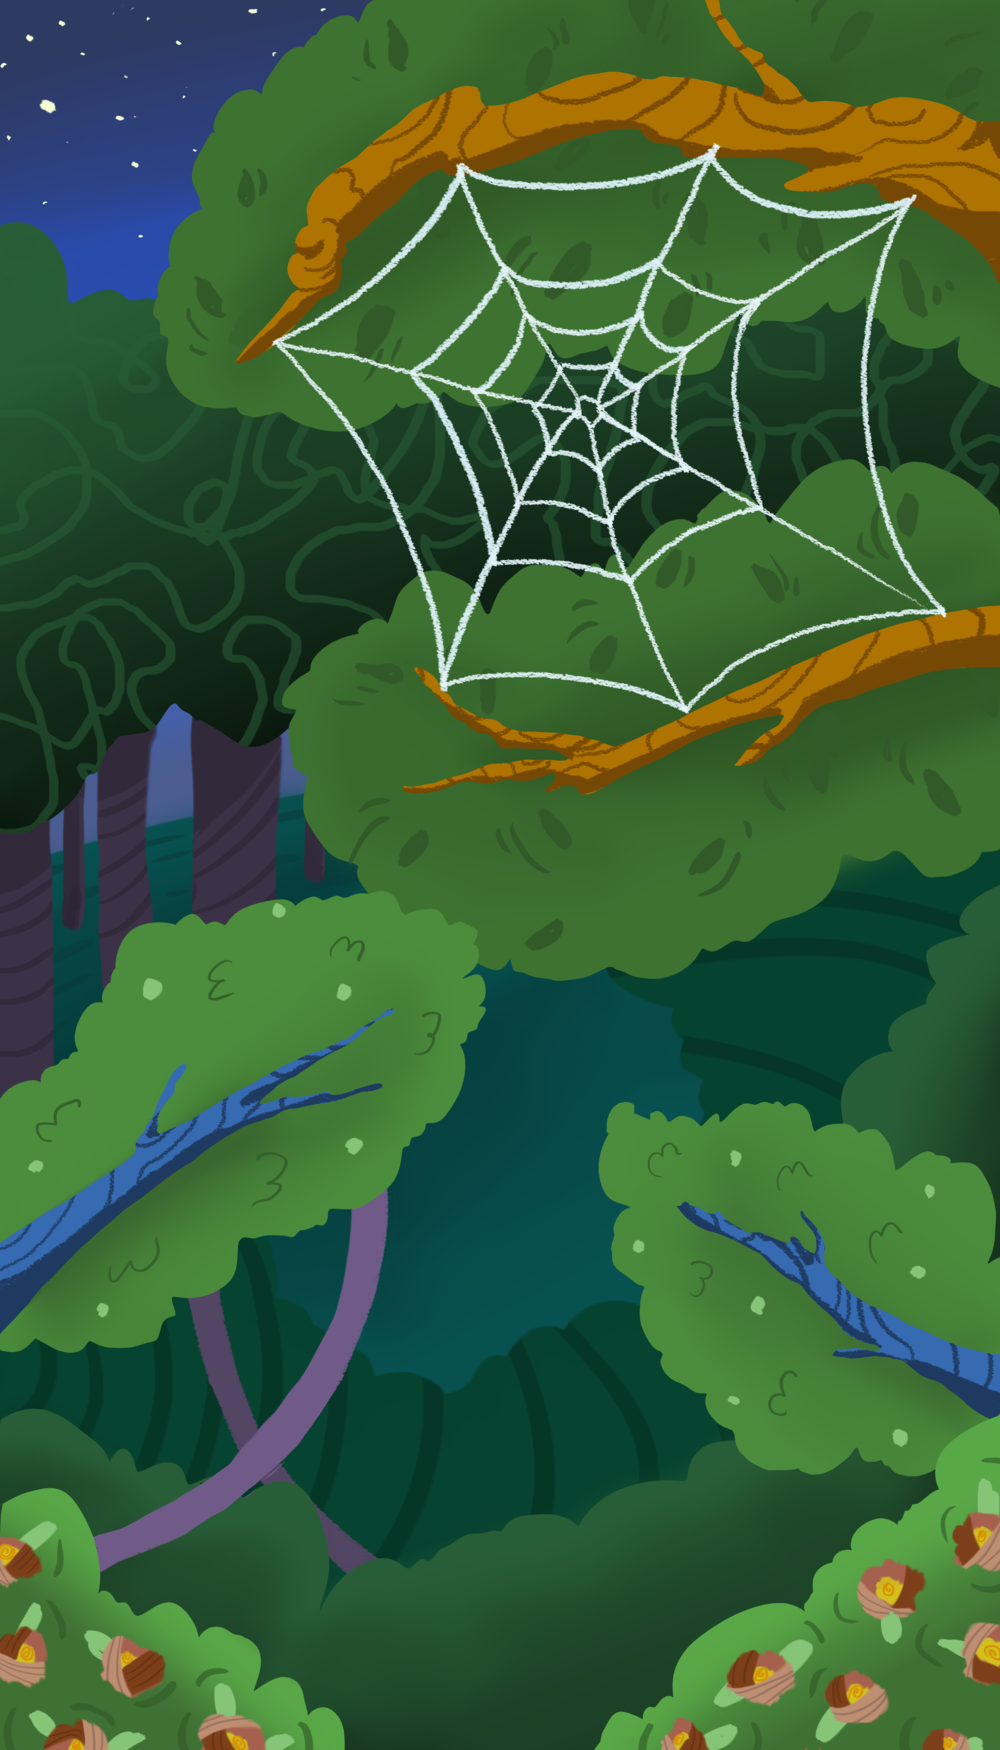 Fruit Bat Background 4 new.png